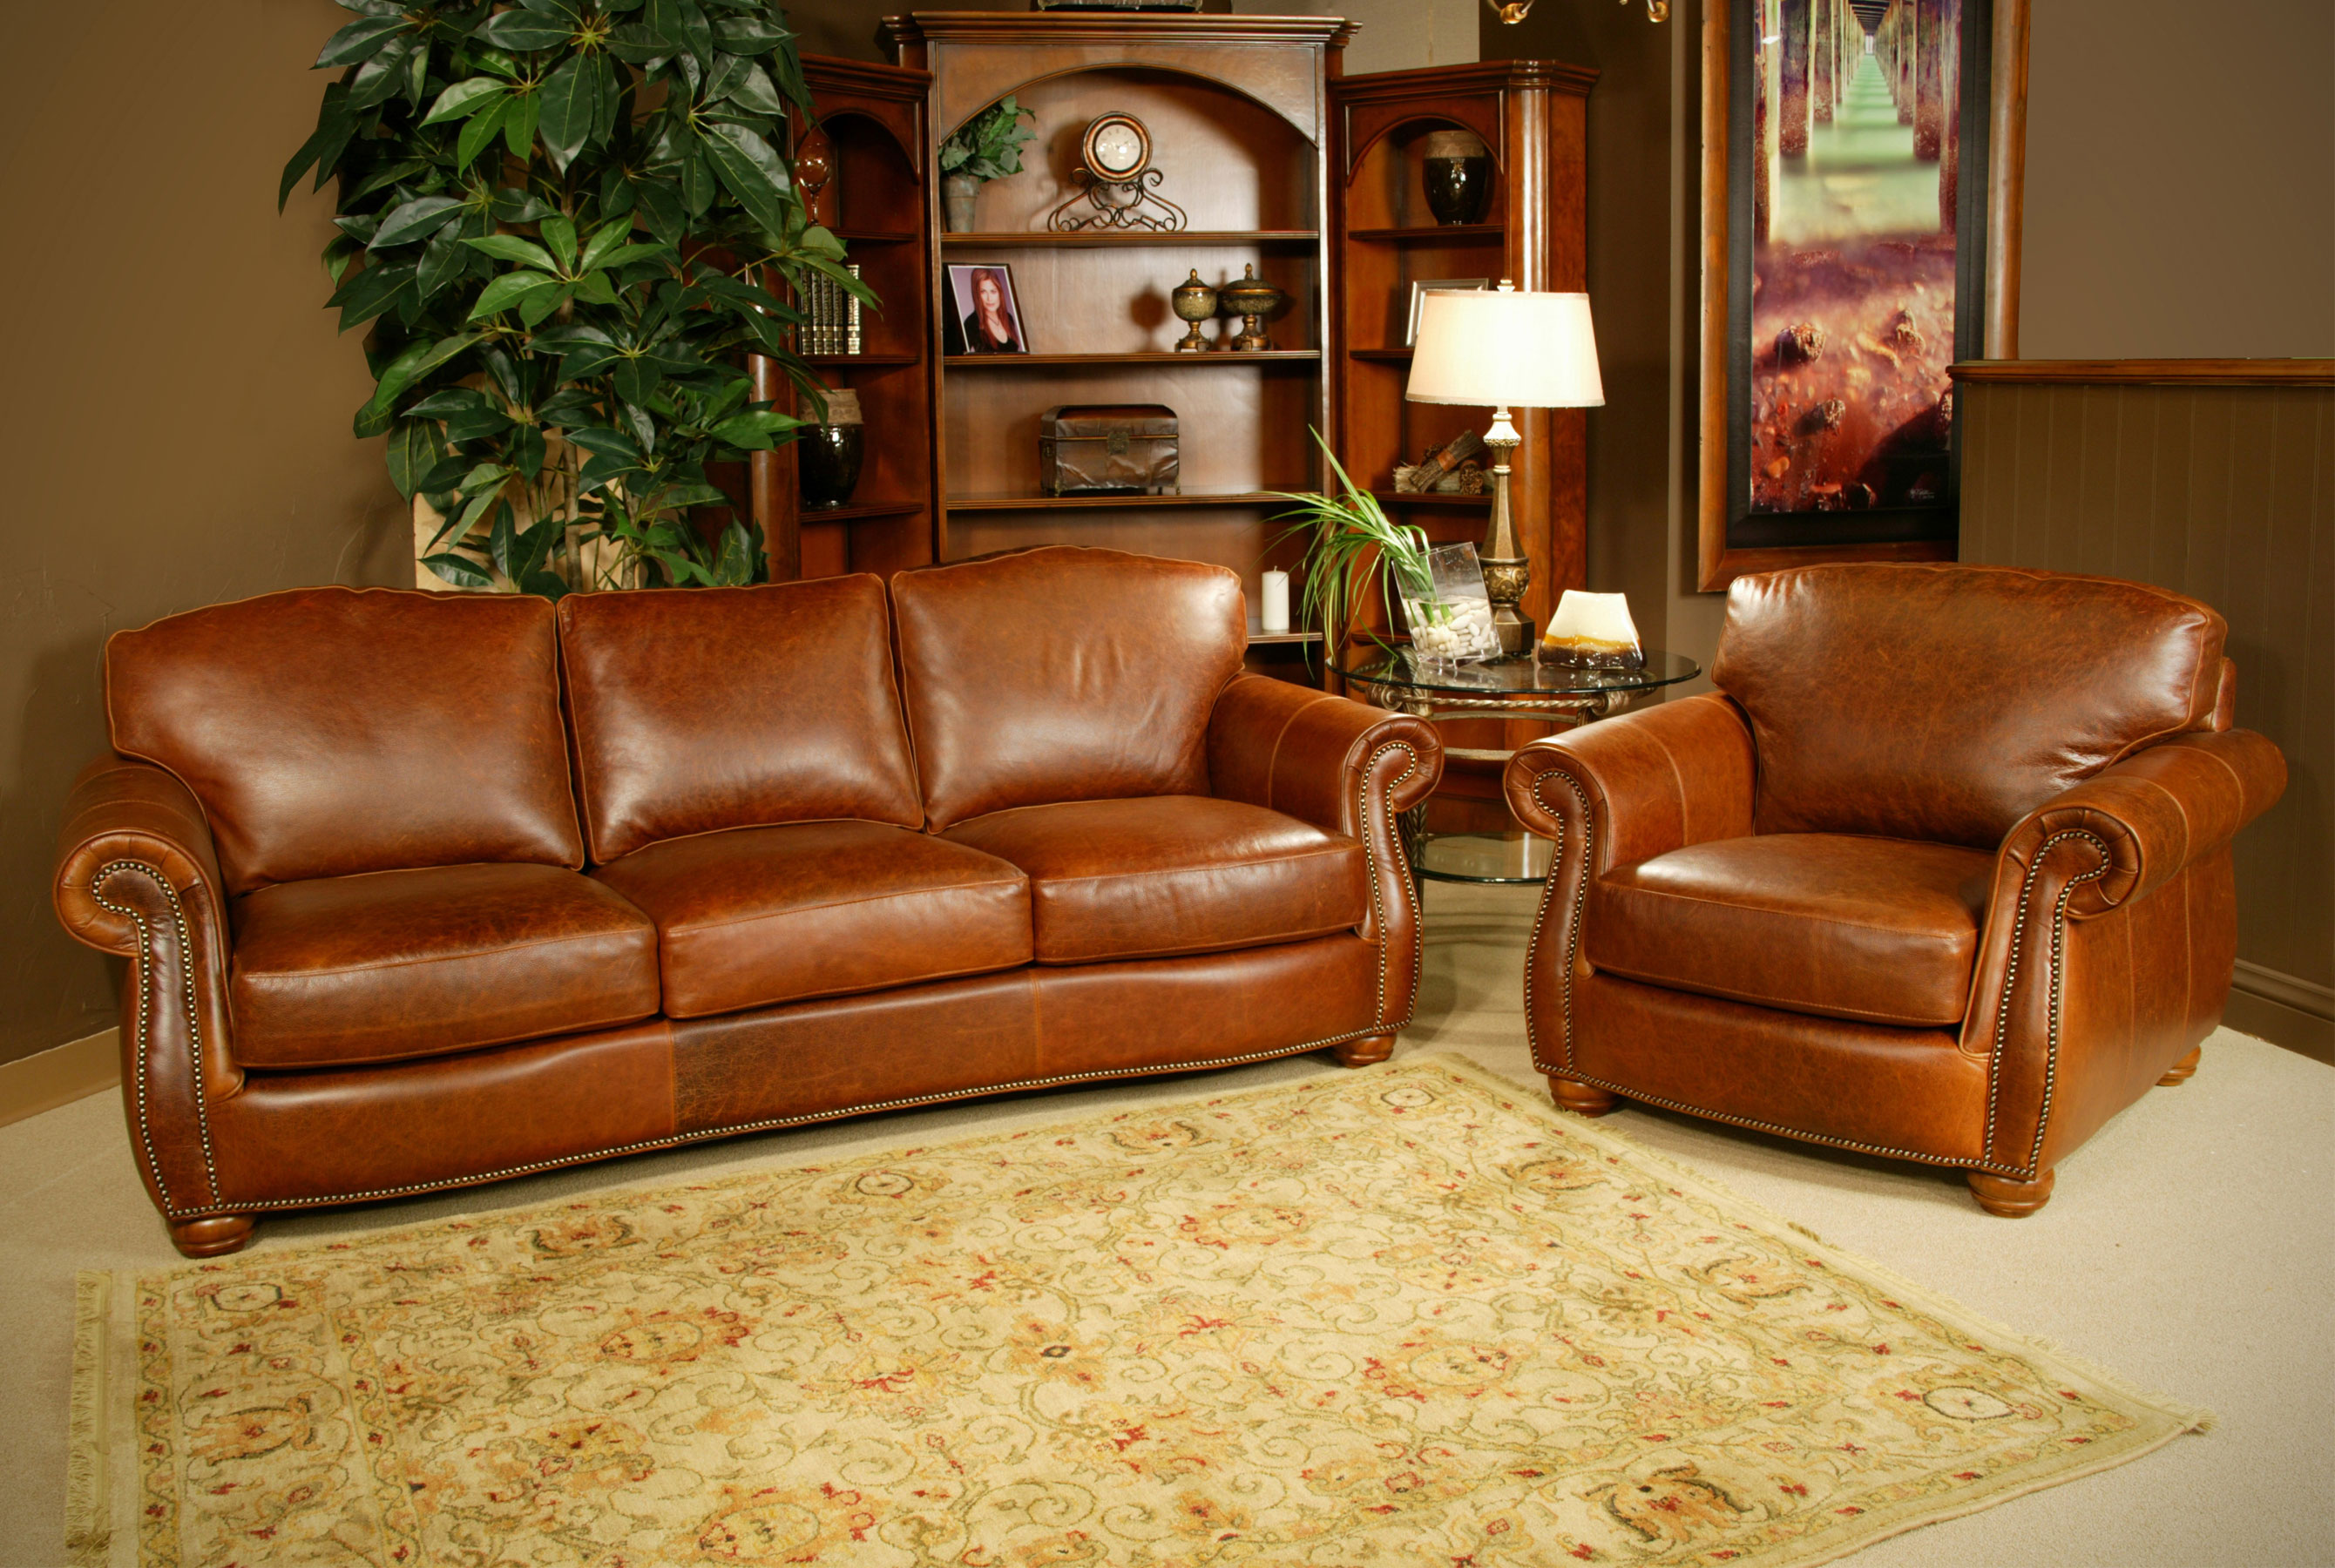 Hunington Furniture Huntington Sofa Collection All Leather Sofas And Sectionals